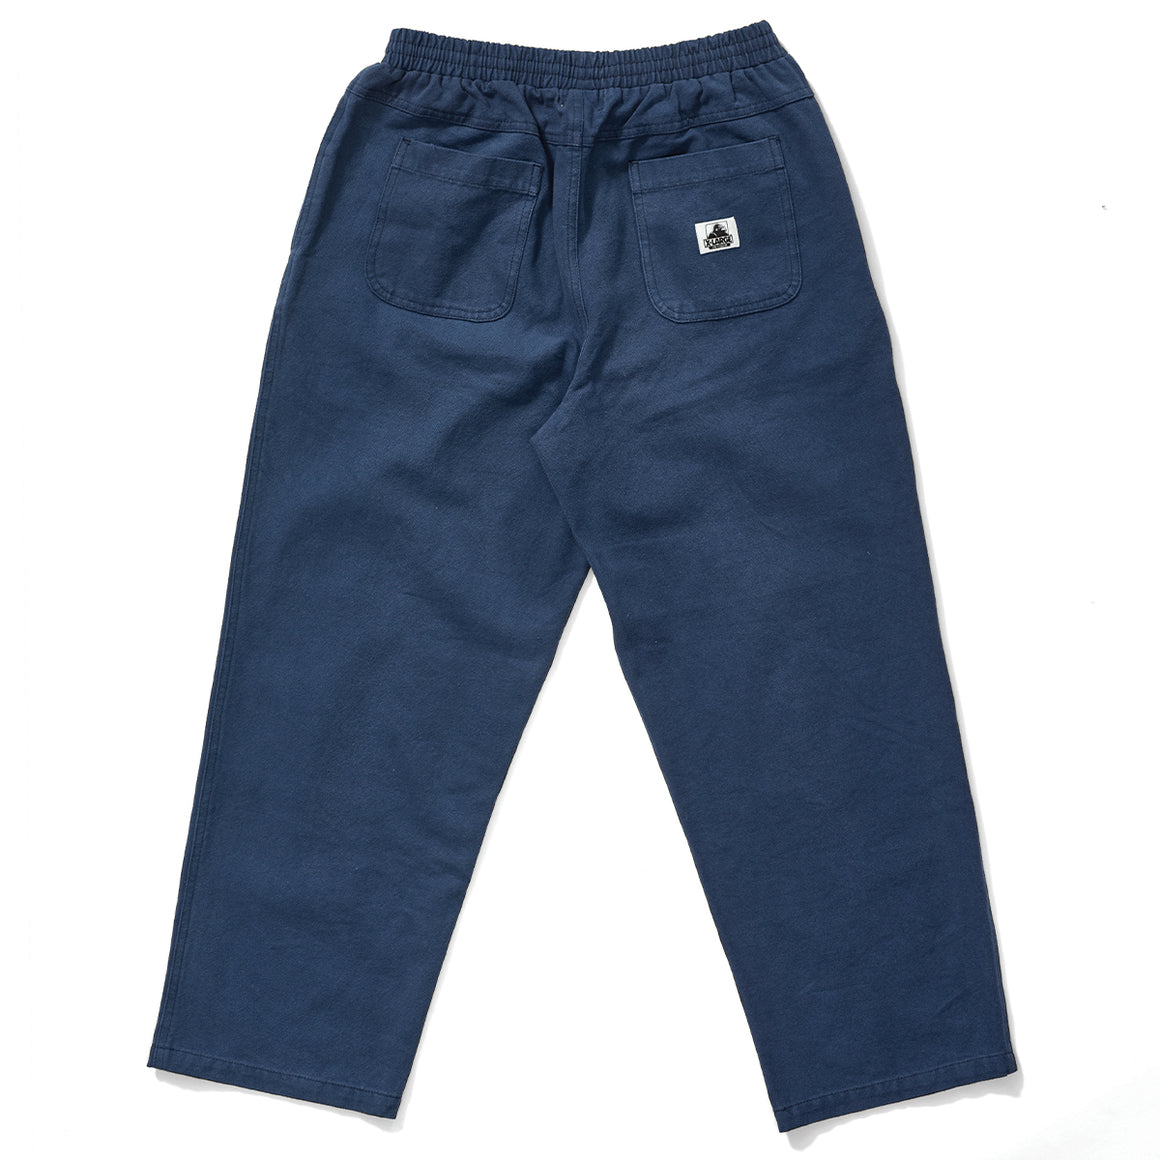 91 Pant, Bottoms  - XLarge Brand